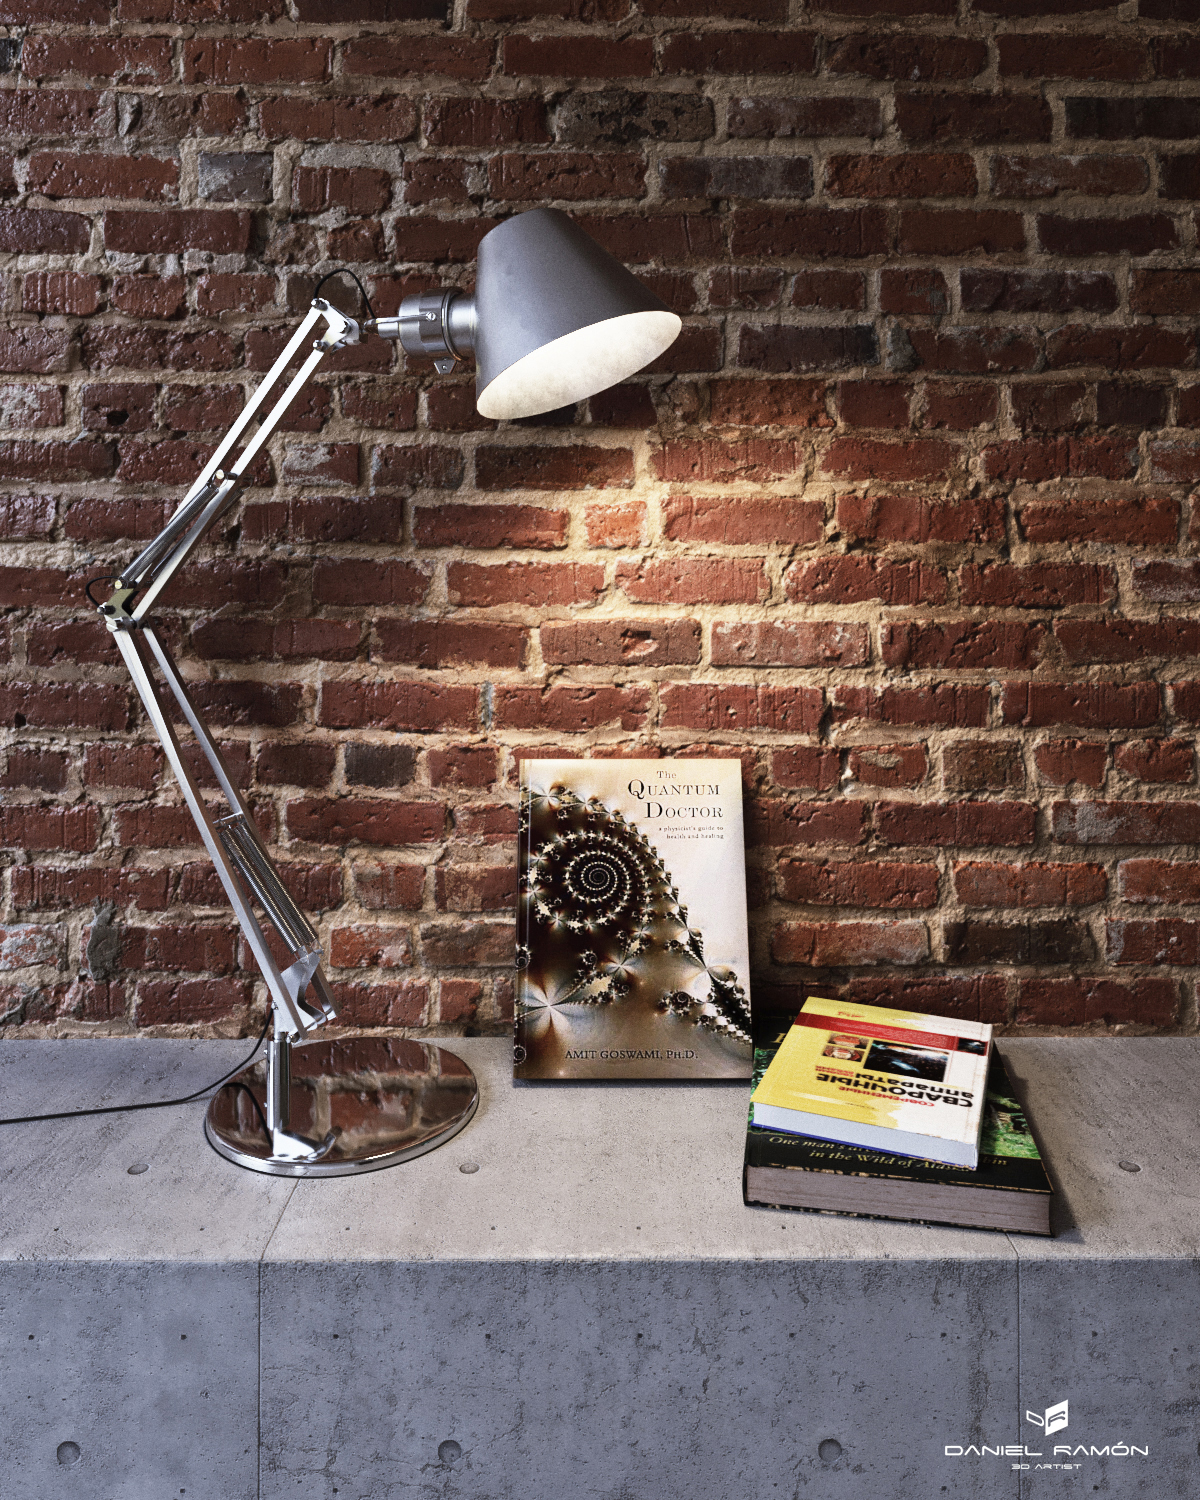 #vray #danielramon3d #3dartist #lamp #lighting #menorca #render